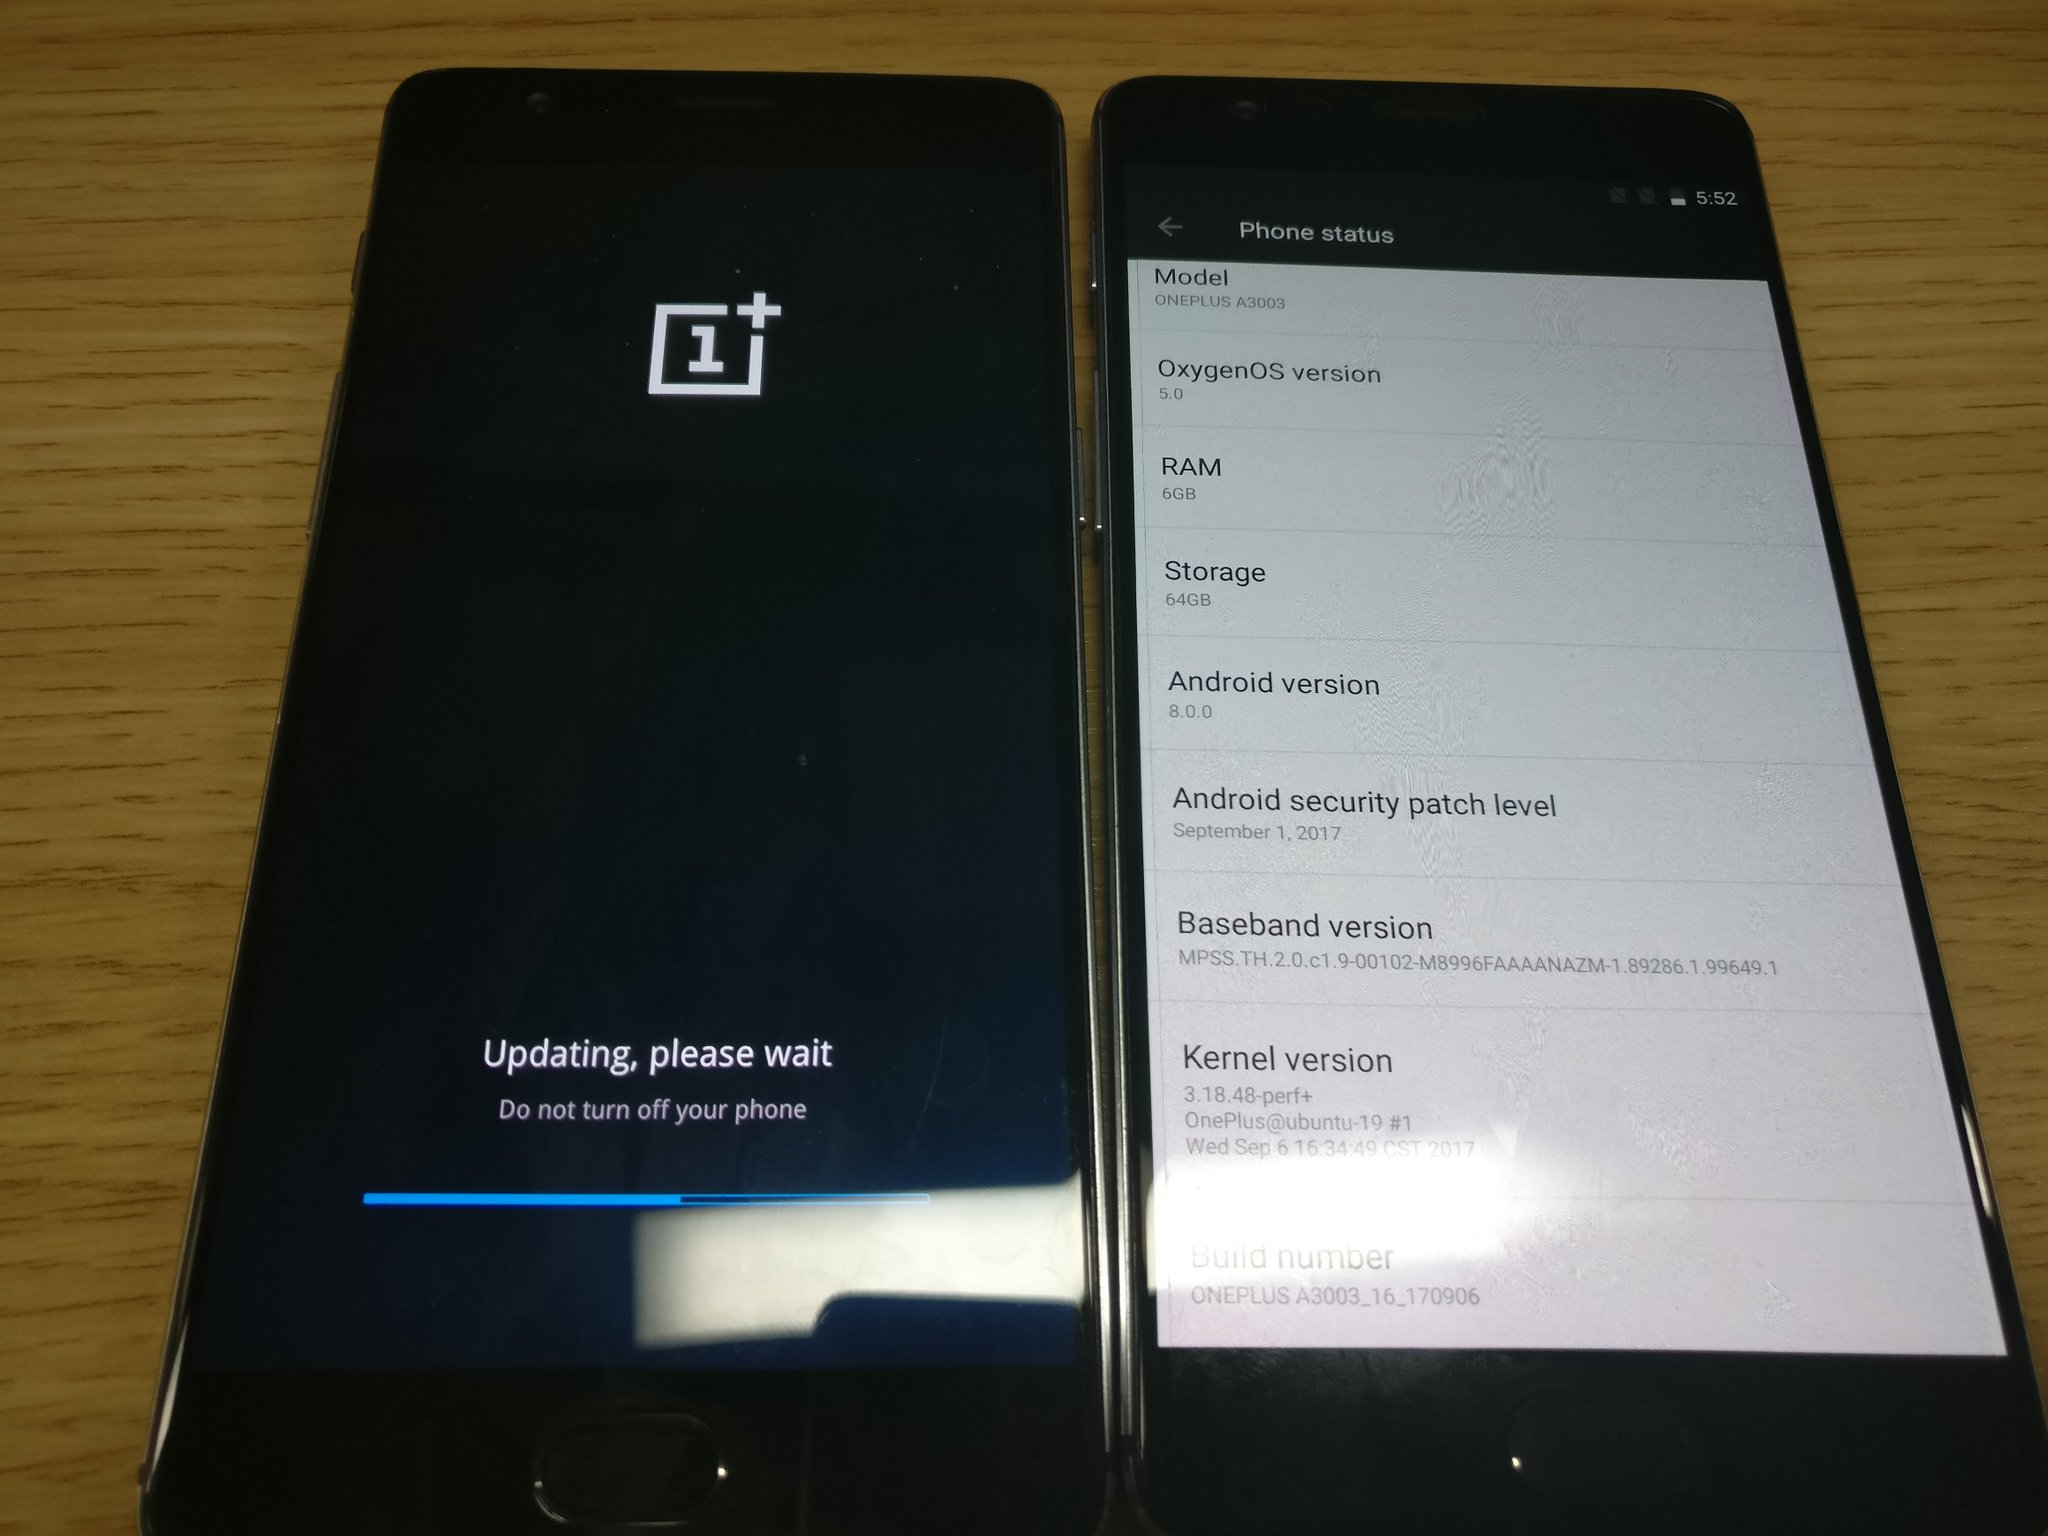 OnePlus 3 Android O closed beta build